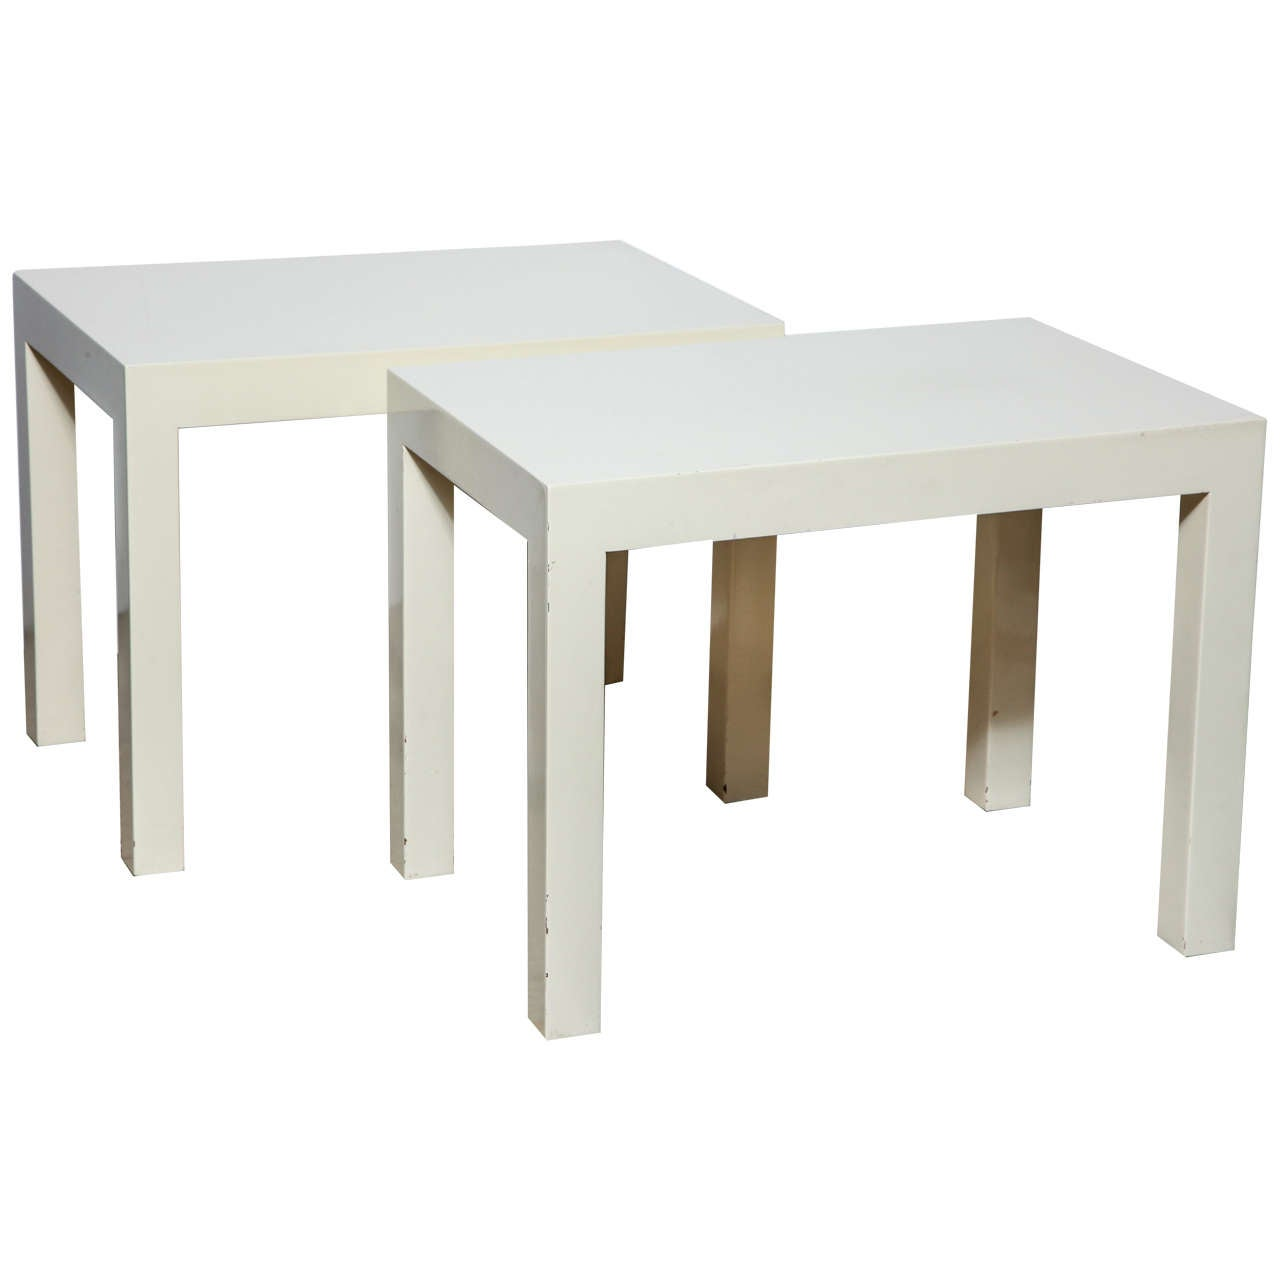 Pair Of Modern 1970u0027s Off White Rectangular Parsons Tables By Intrex 1